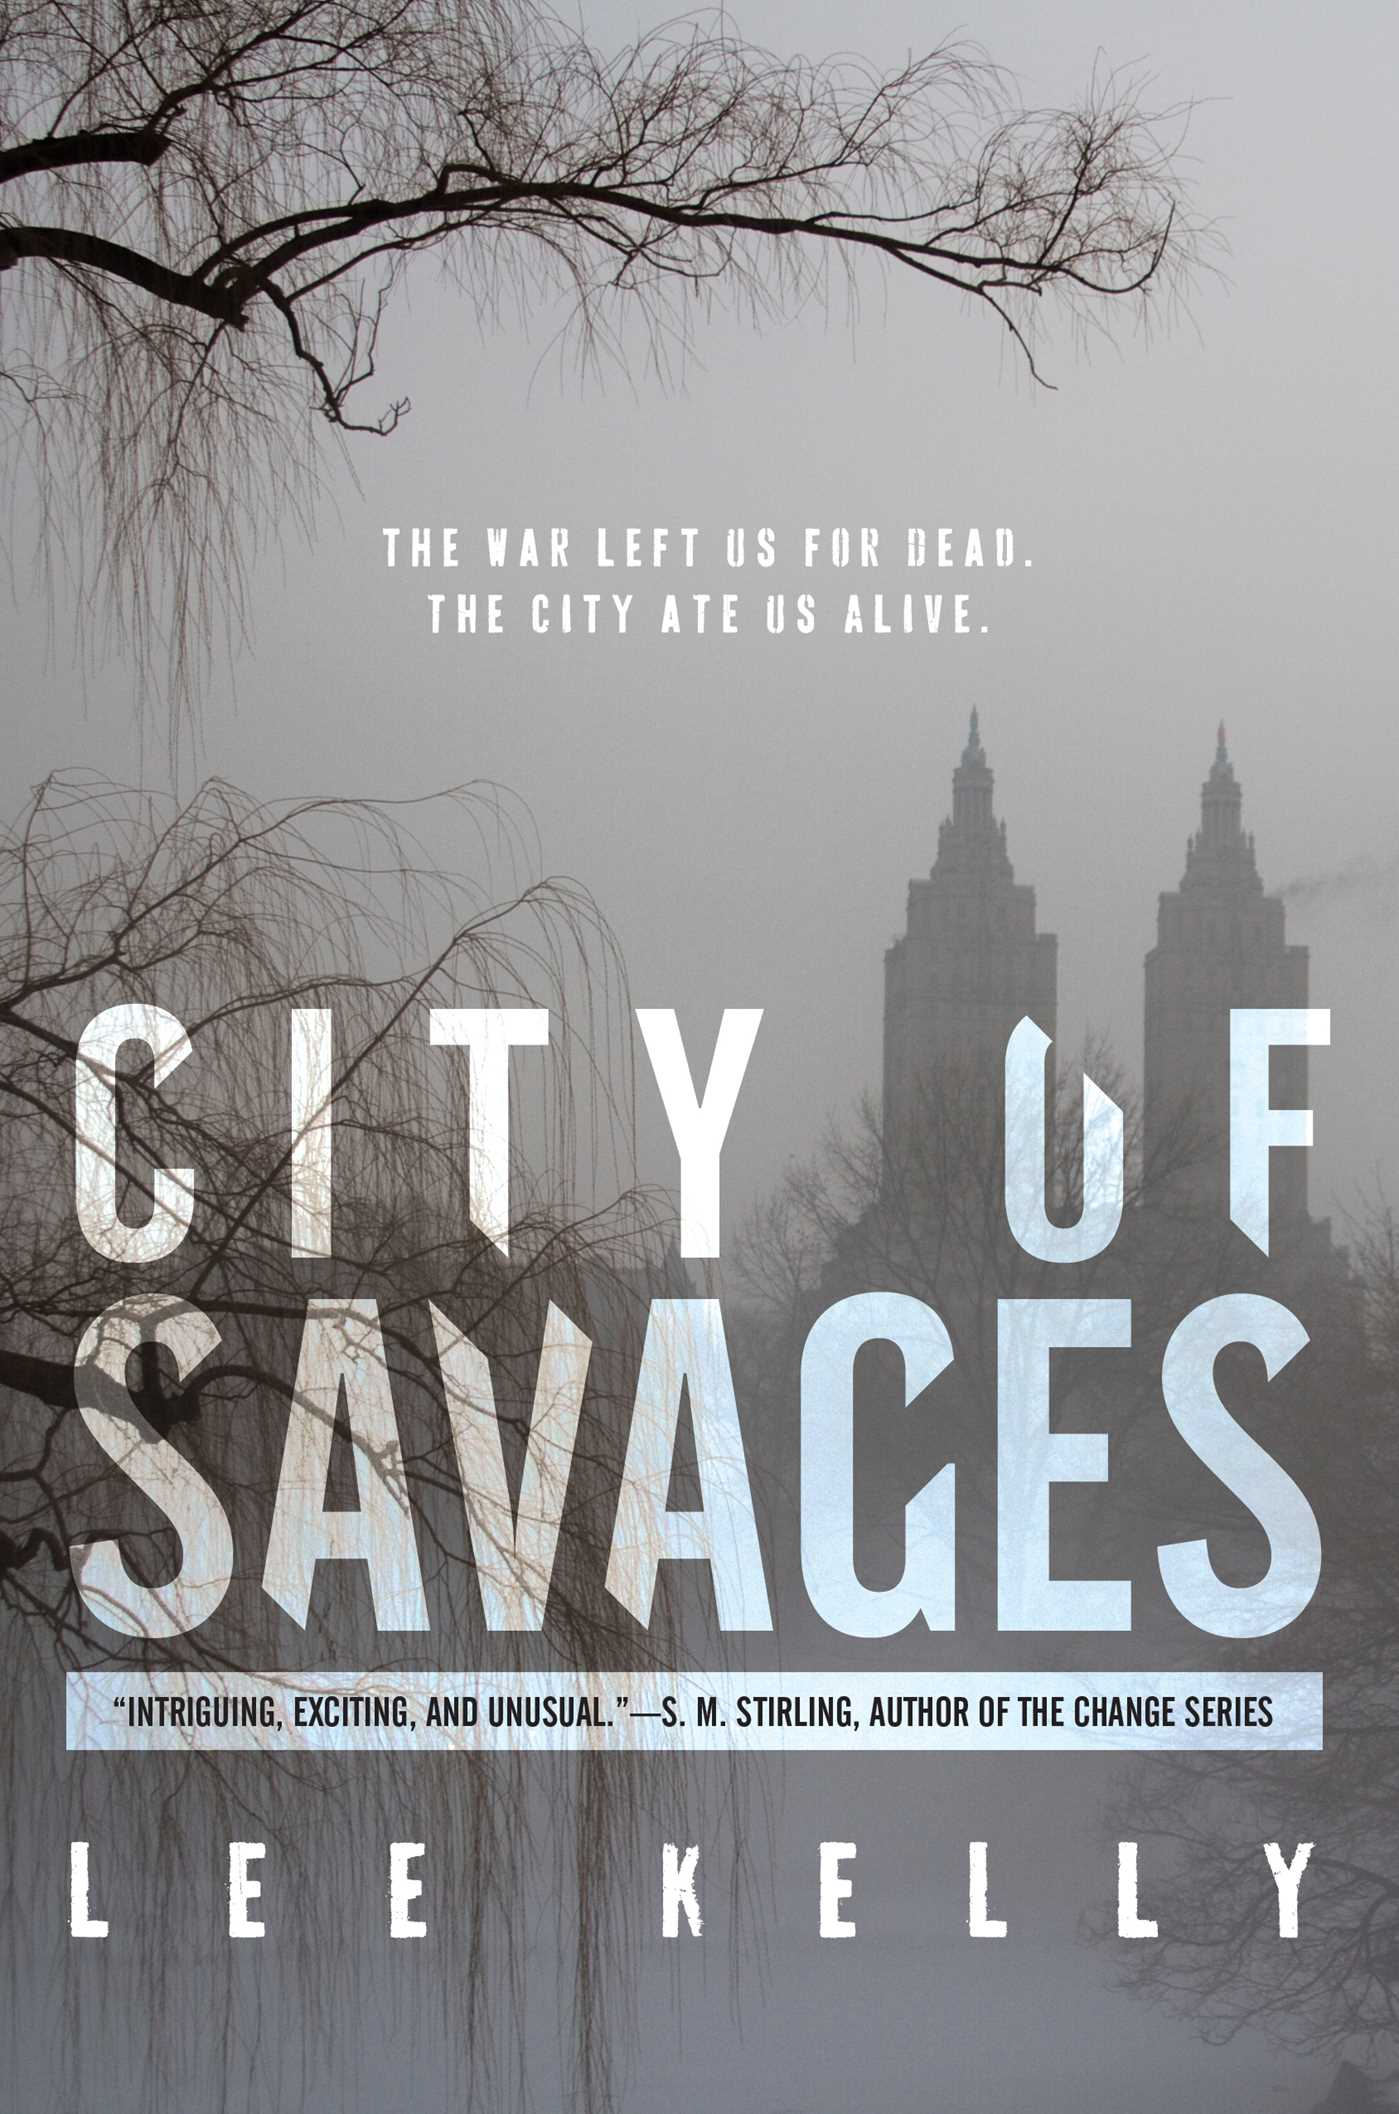 City of savages 9781481410304 hr